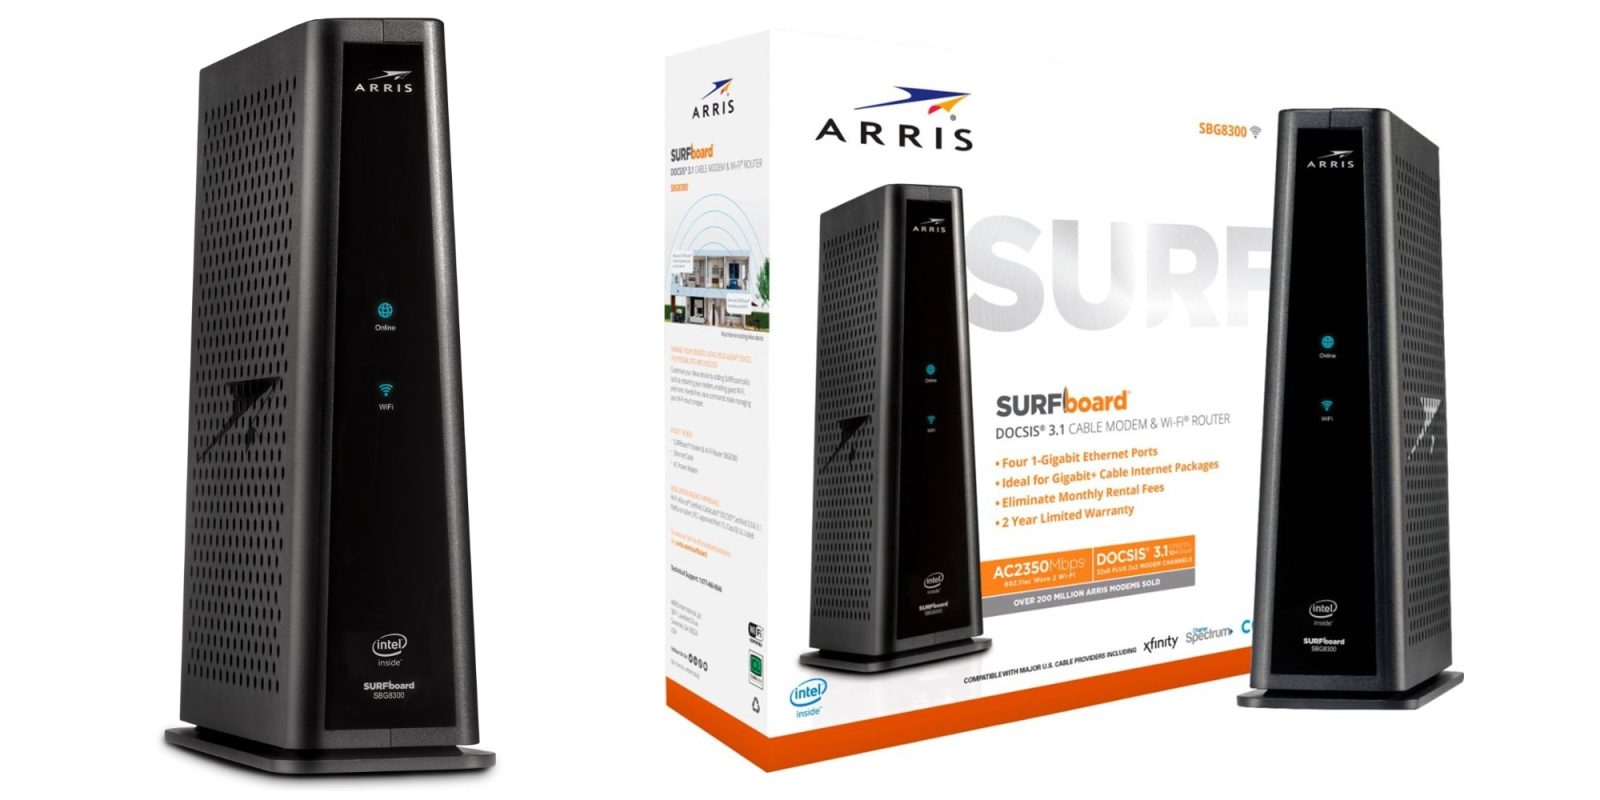 Save 20% on this ARRIS SURFboard DOCSIS 3.1 Modem and 802.11ac Router at $240